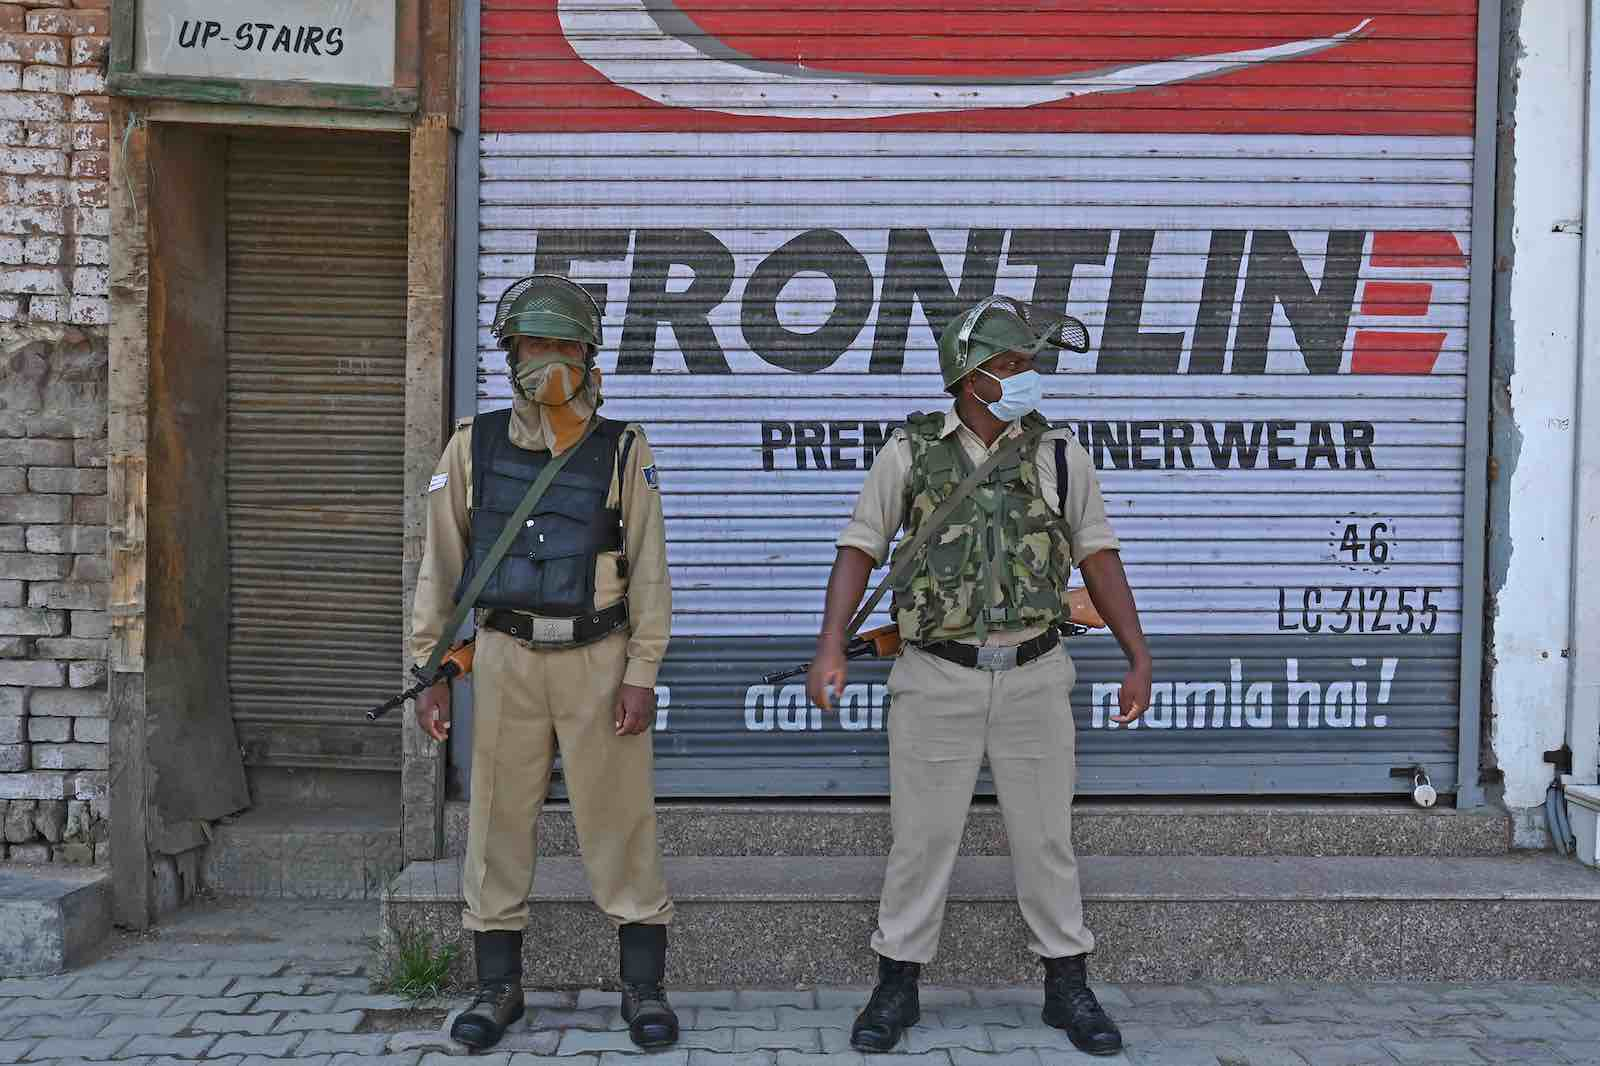 Indian paramilitary soldiers stand guard in central Srinagar, 10 June 2020 (Tauseef Mustafa/AFP via Getty Images)